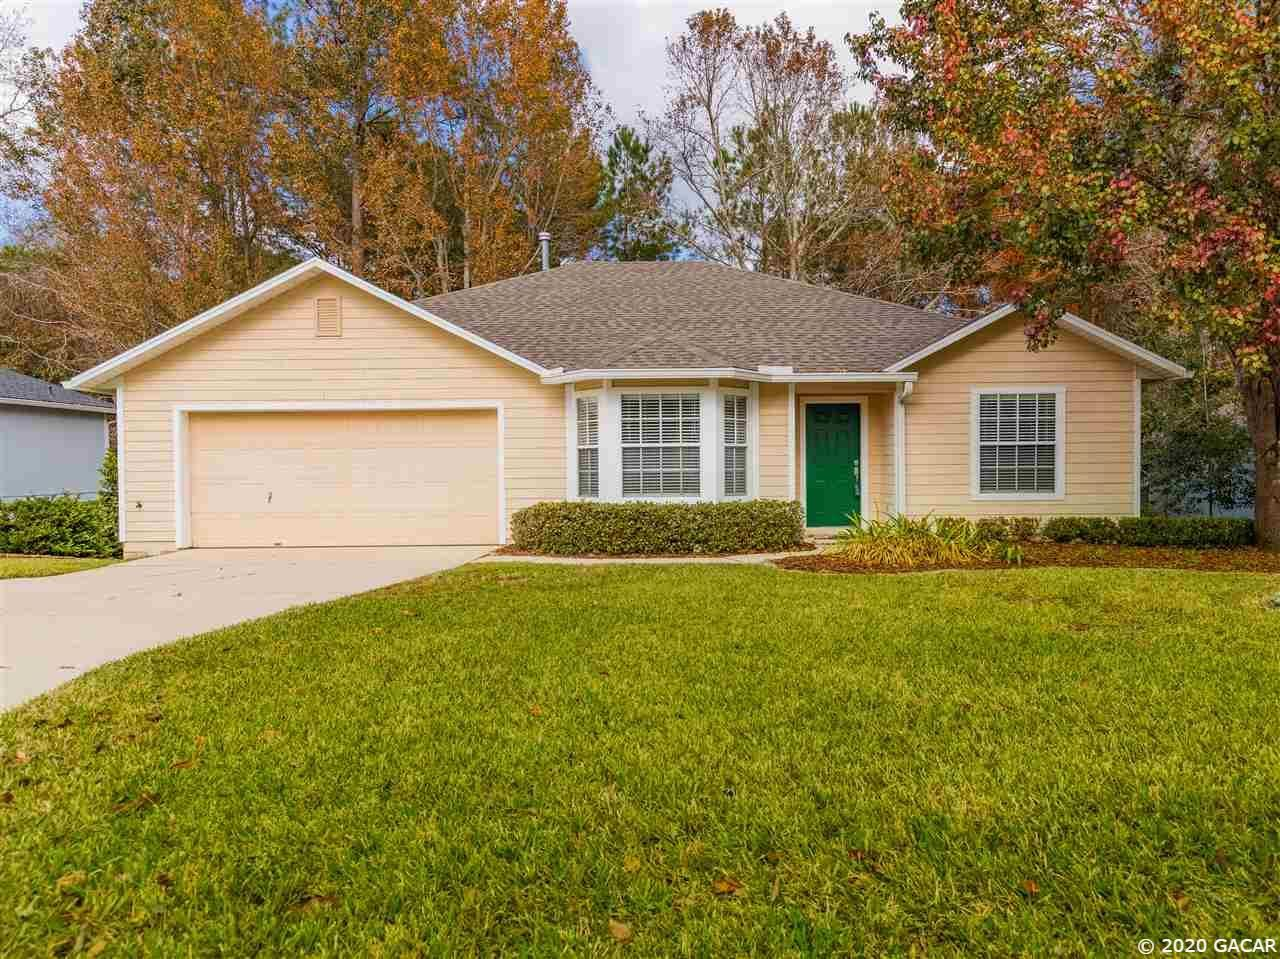 8808 NW 35 Road, Gainesville, FL 32606 - #: 439589